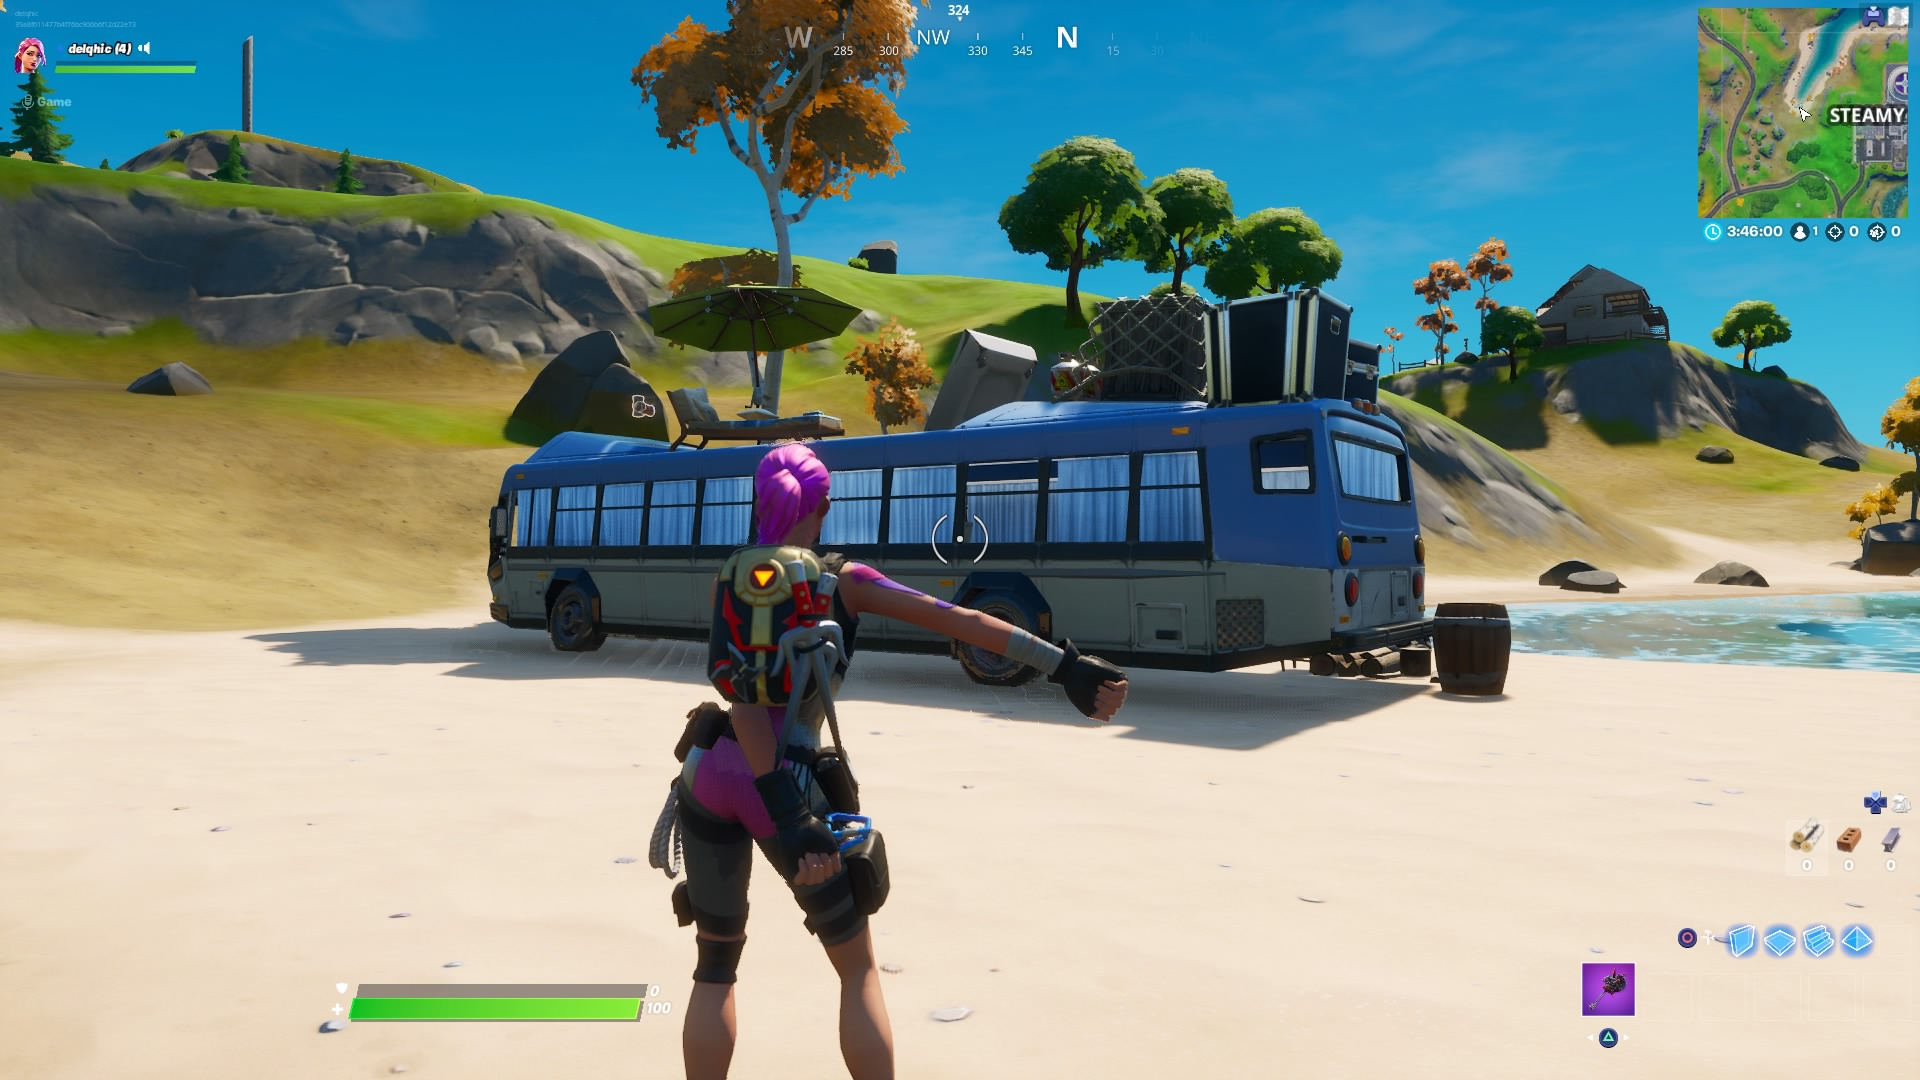 Byba: Fortnite Dance At Rainbow Rentals Beach Bus And Lake ...